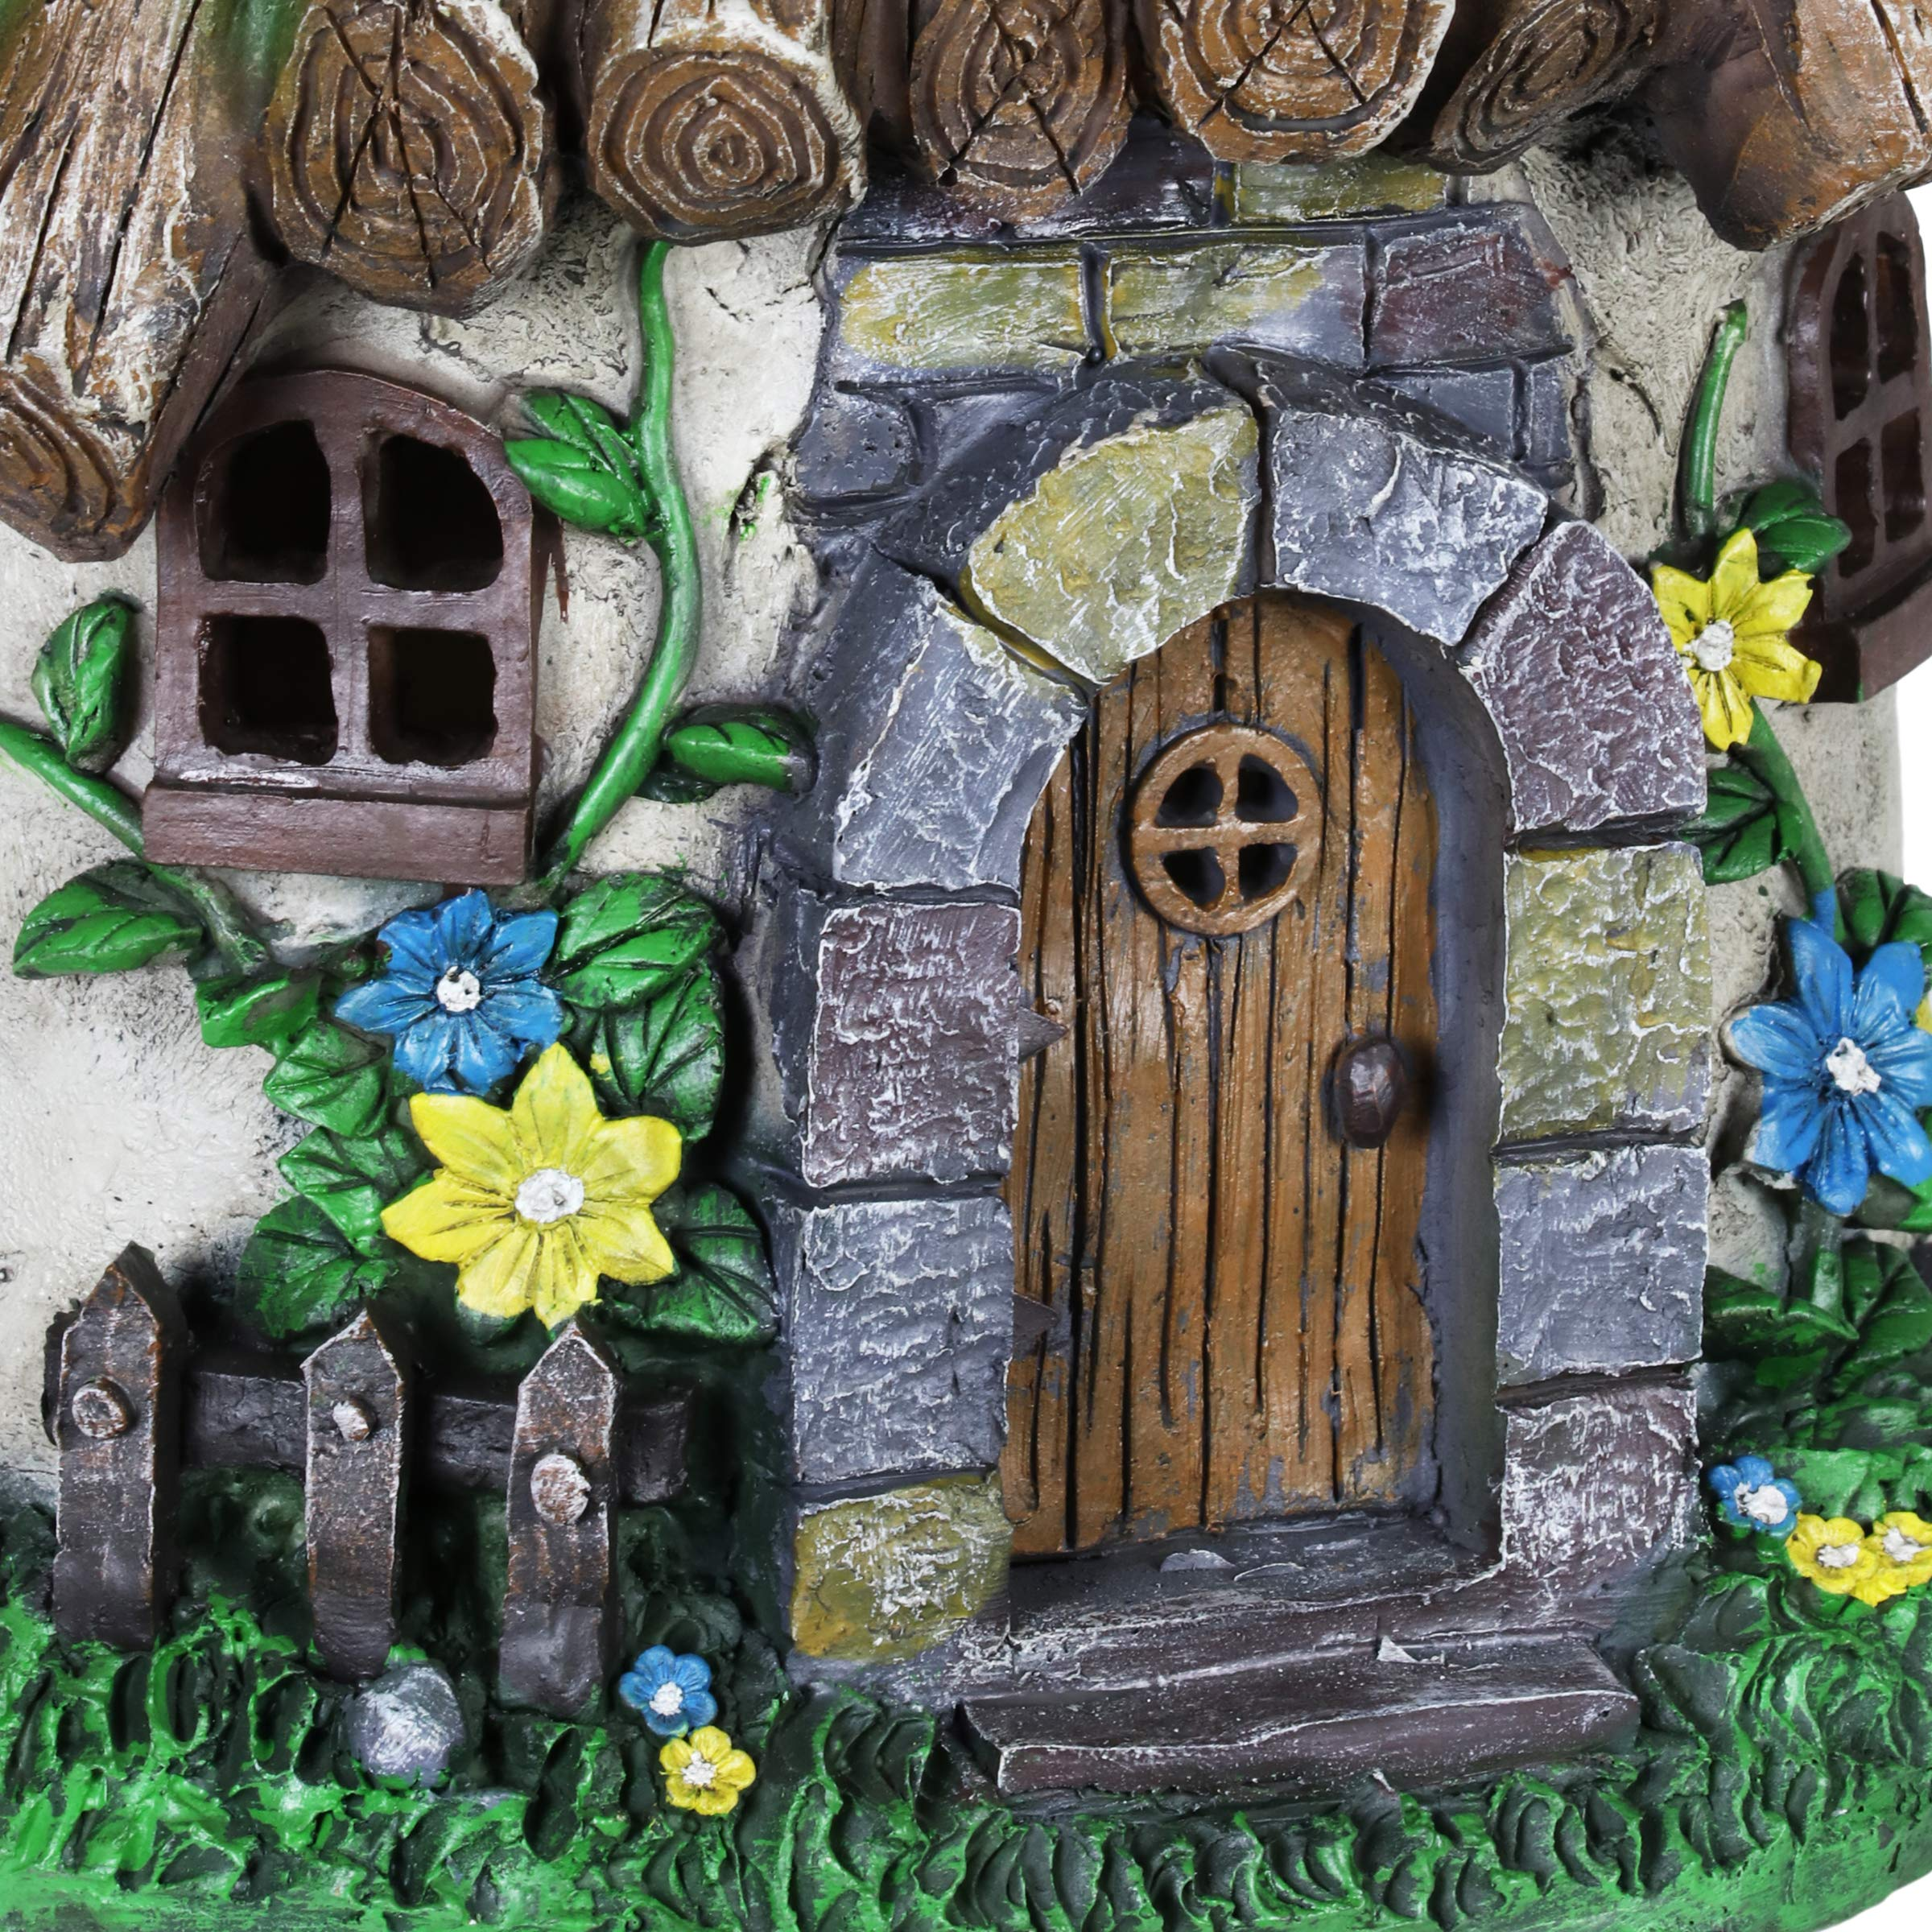 Exhart Twigs Roof Fairy House Outdoor Decor - Fairy Cottage Resin Statue with Solar Garden Lights, Miniature Fairy Hut Solar Home Decor for a Magical Fairy Garden, 9'' L x 9'' W x 15'' H by Exhart (Image #4)